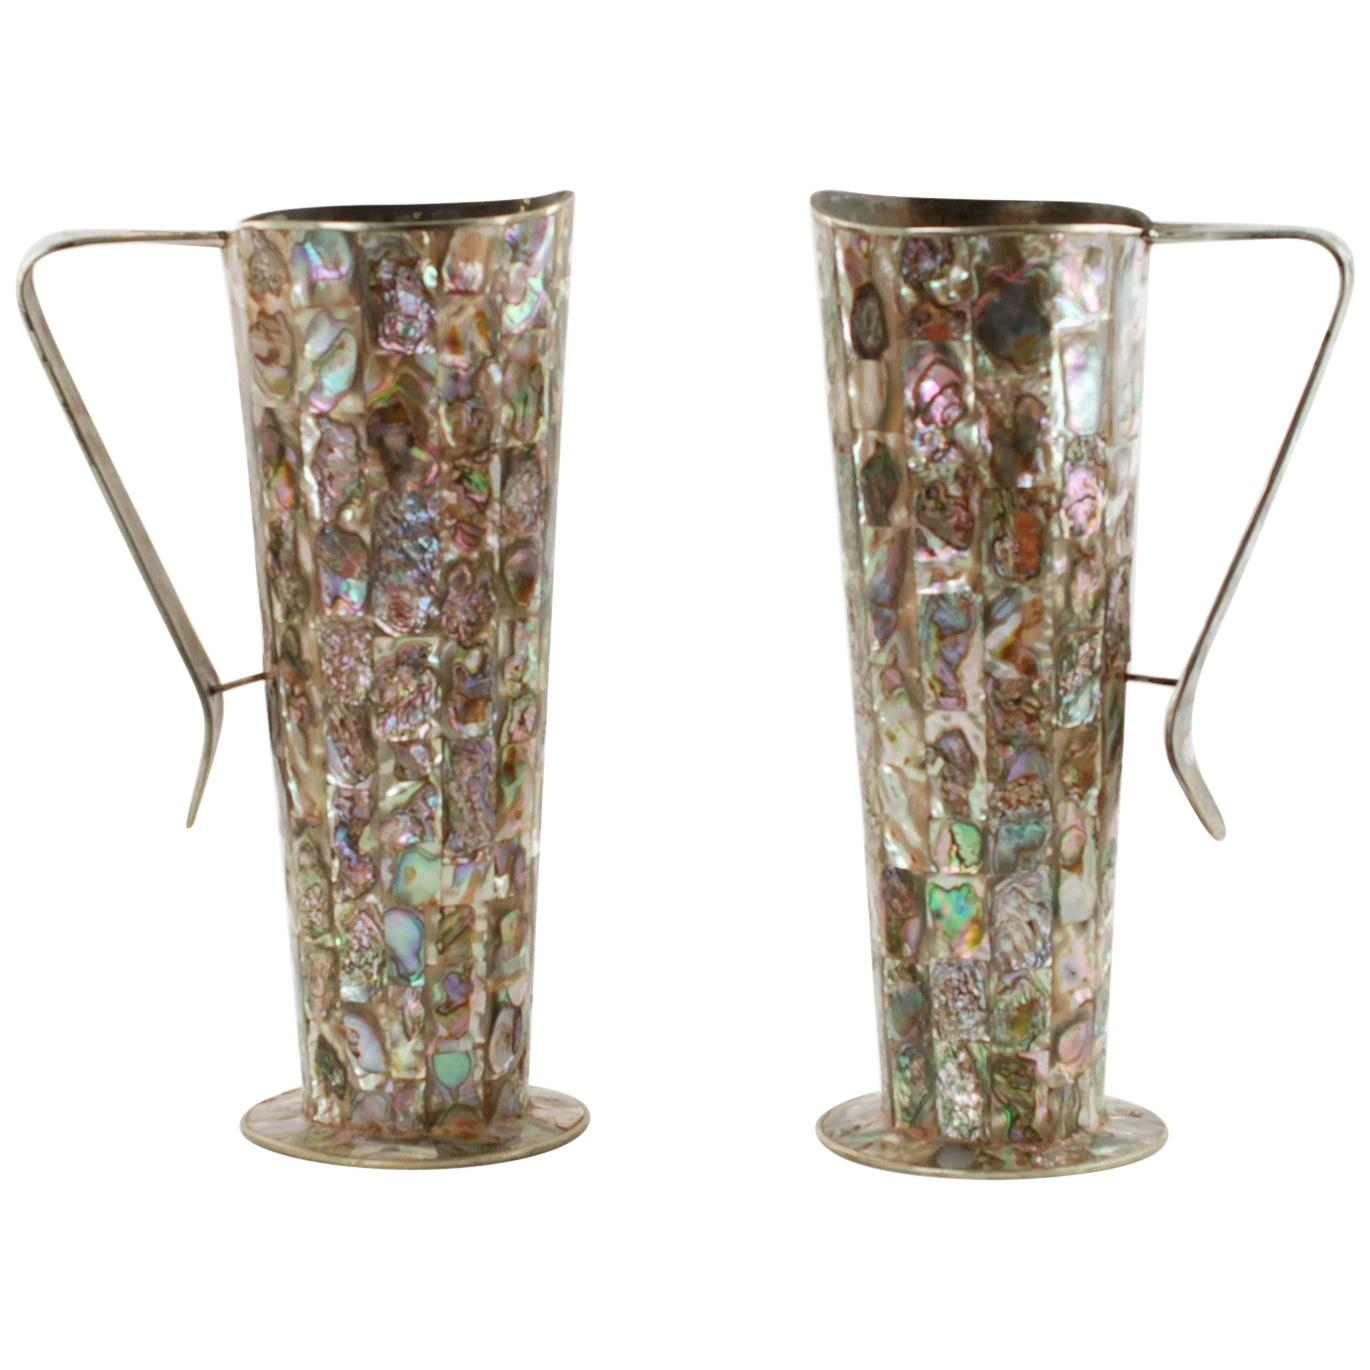 Vintage Mexican Alpaca Pitchers with Inlaid Abalone Tiles Matched Set of Two